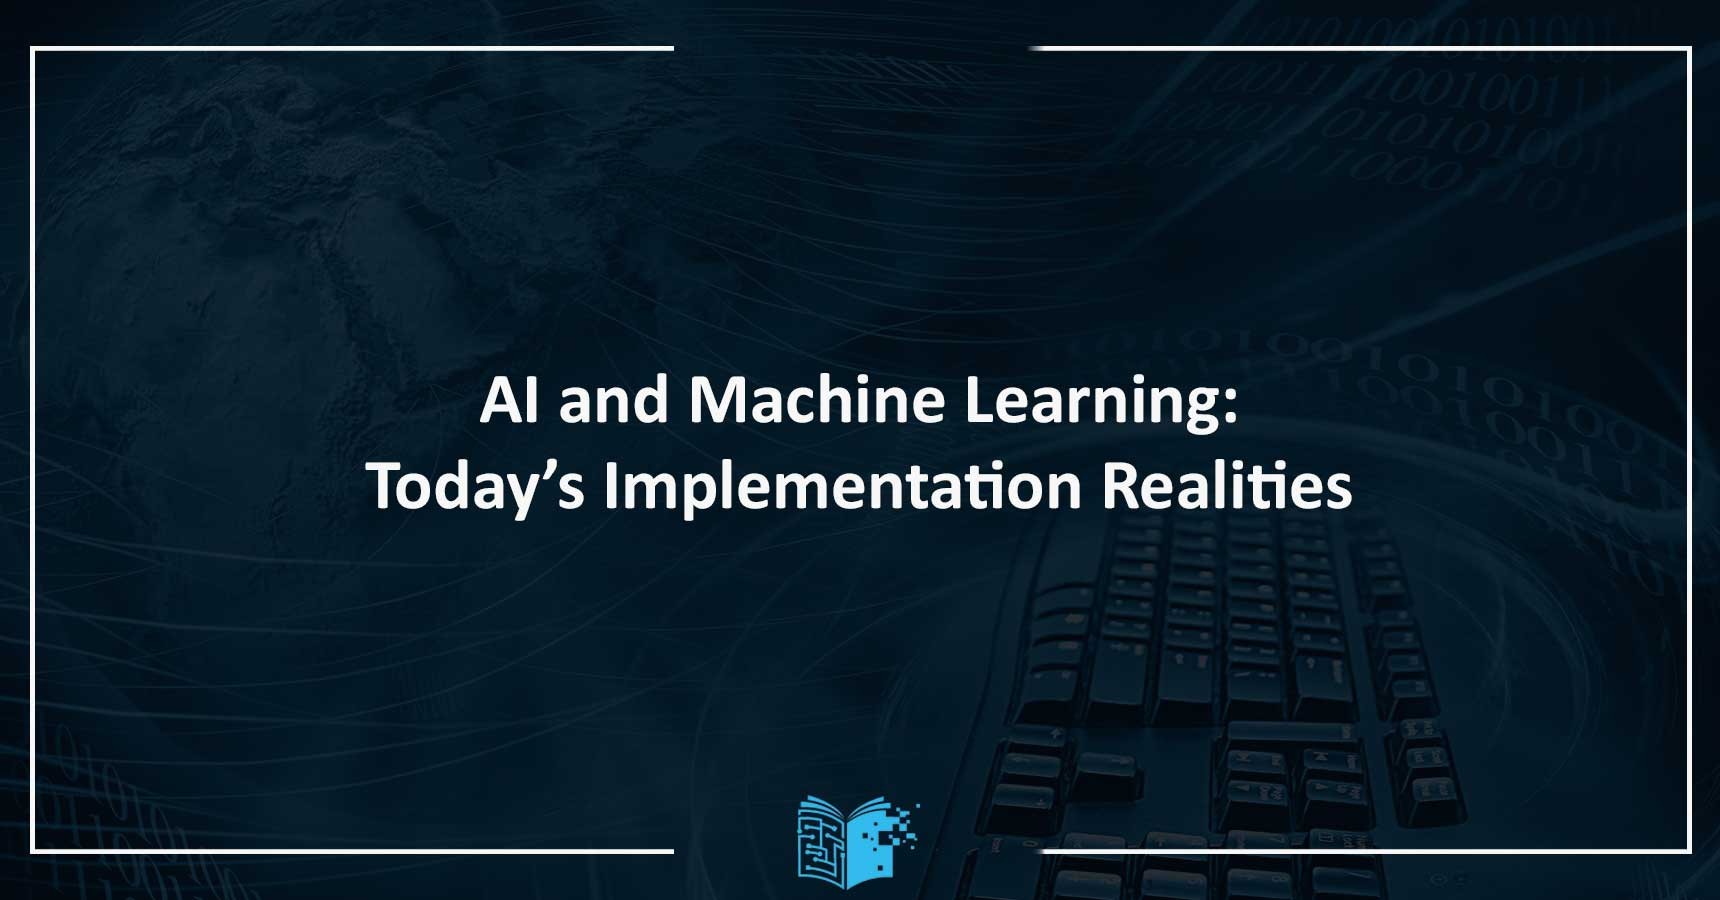 AI and Machine Learning: Today's Implementation Realities Eğitimi